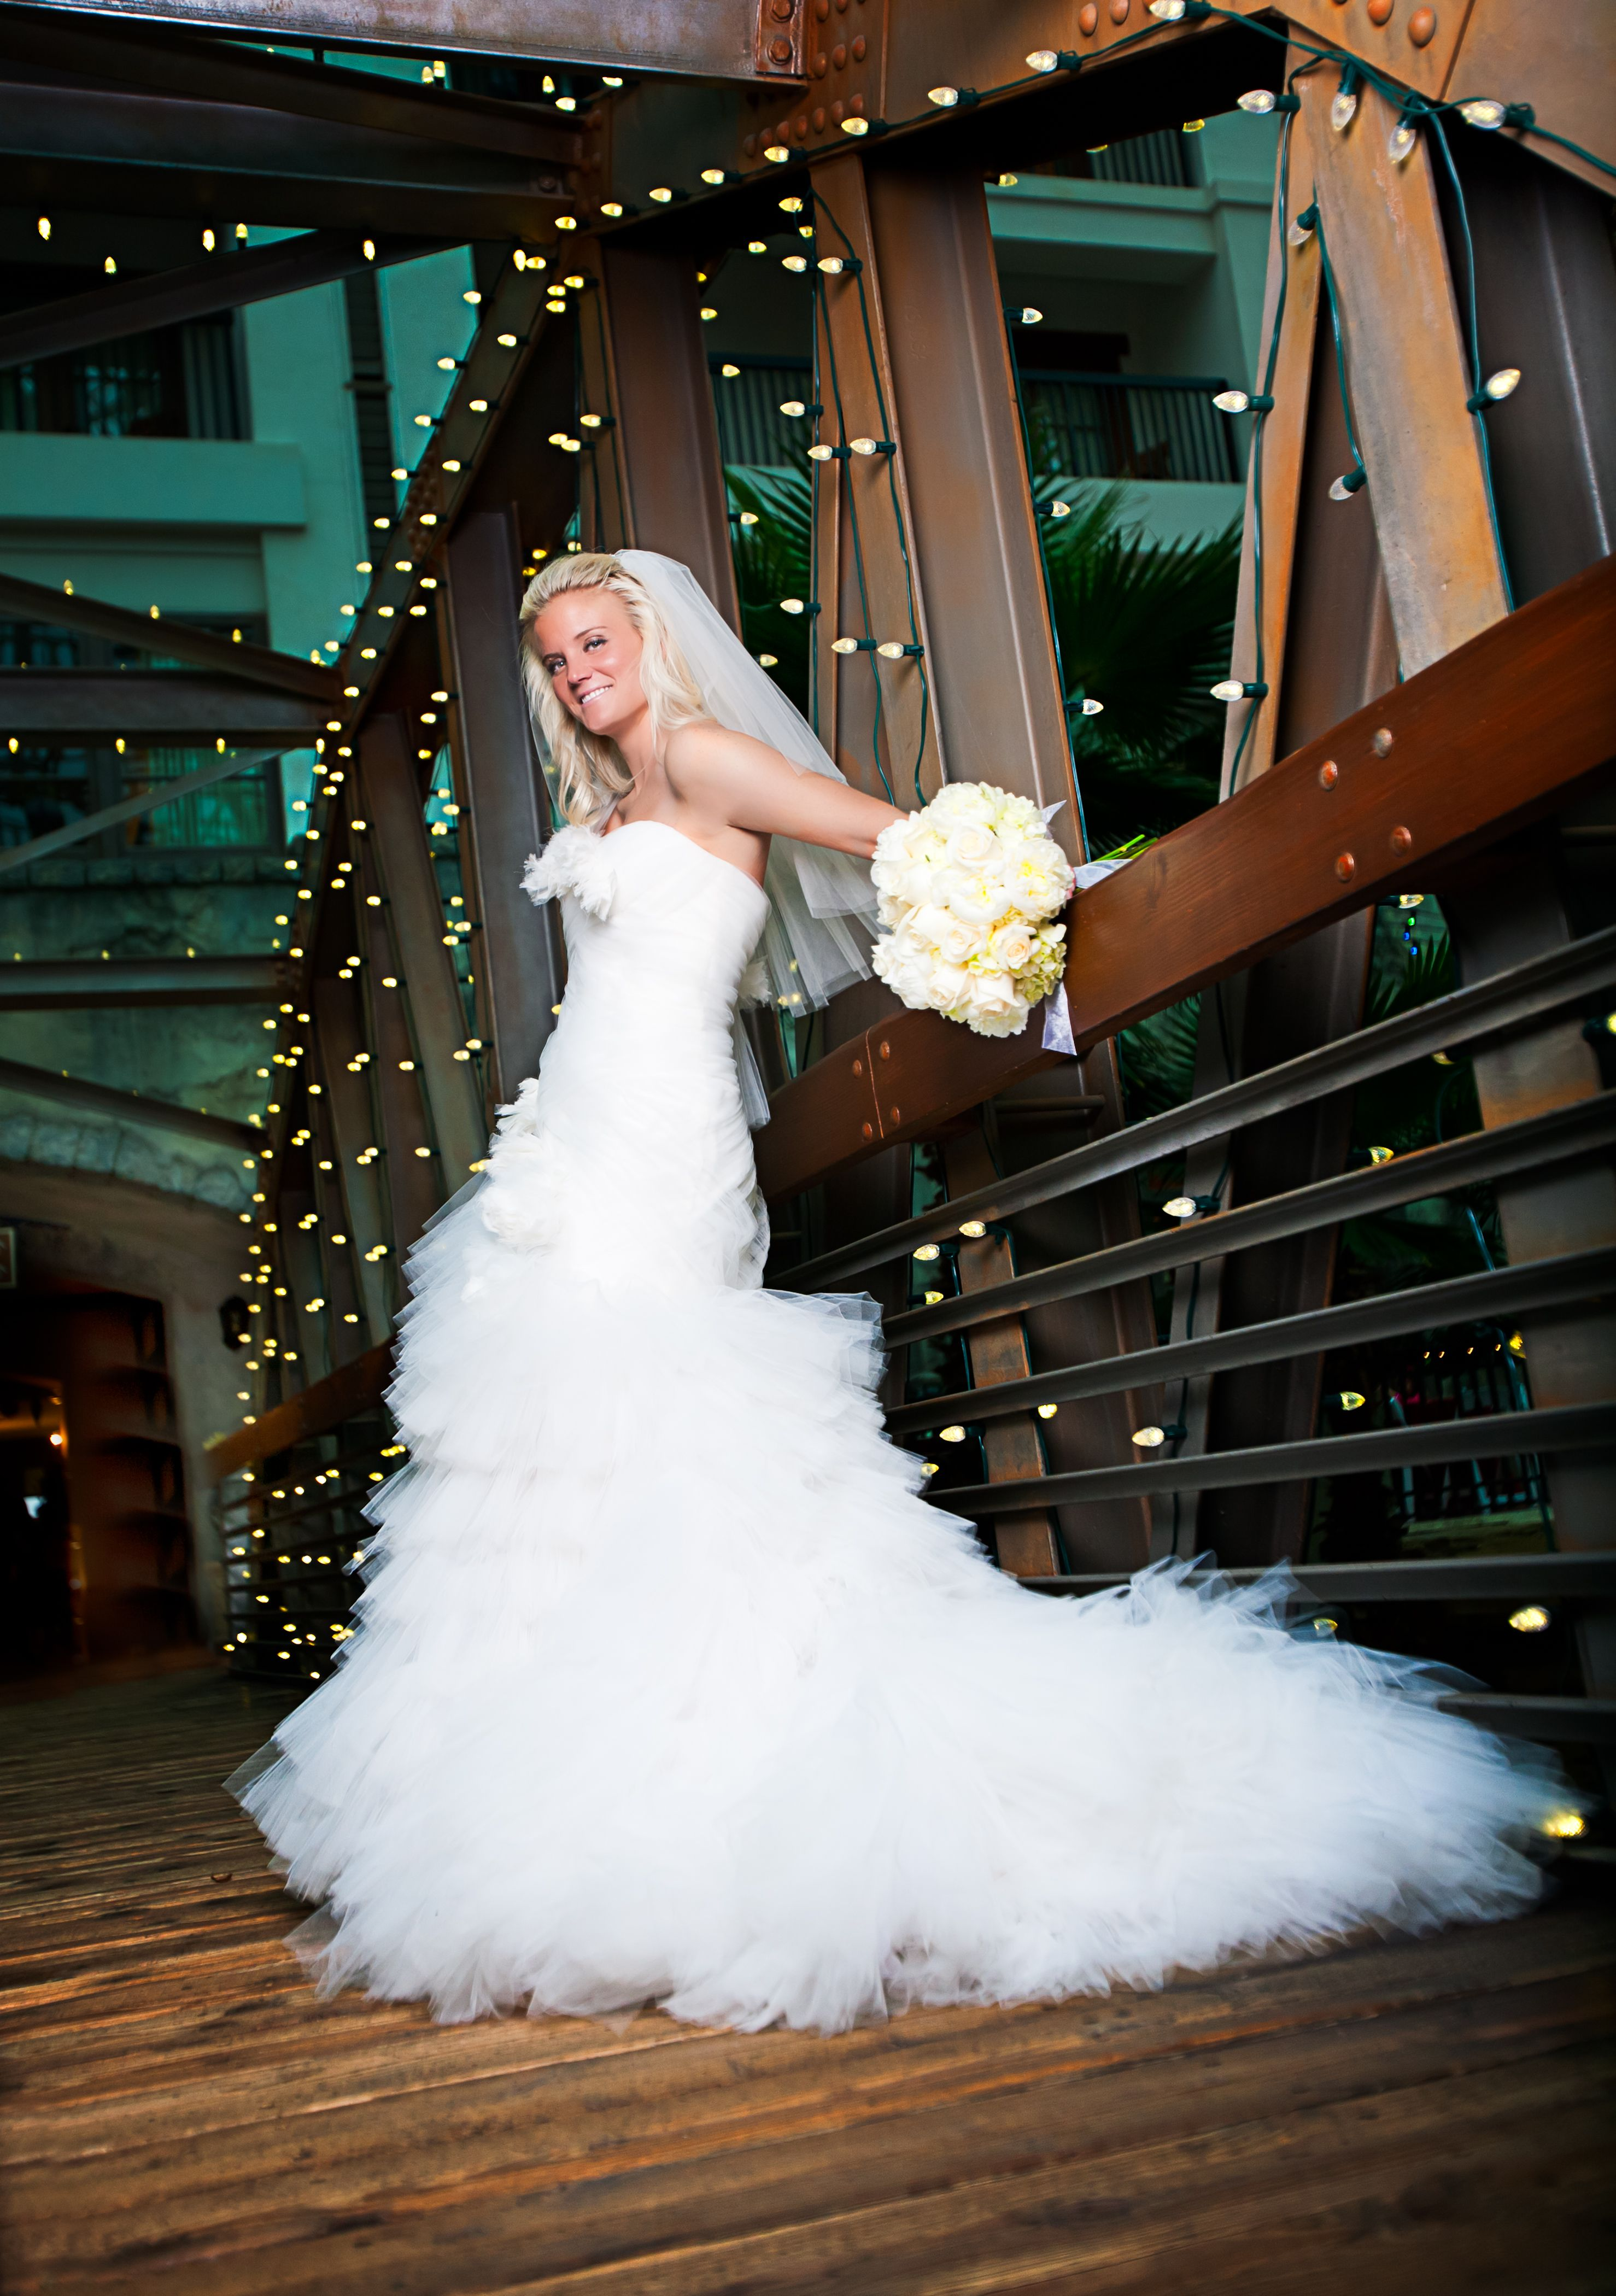 bridal portraiture at the gaylord texan resort hotel in grapevine